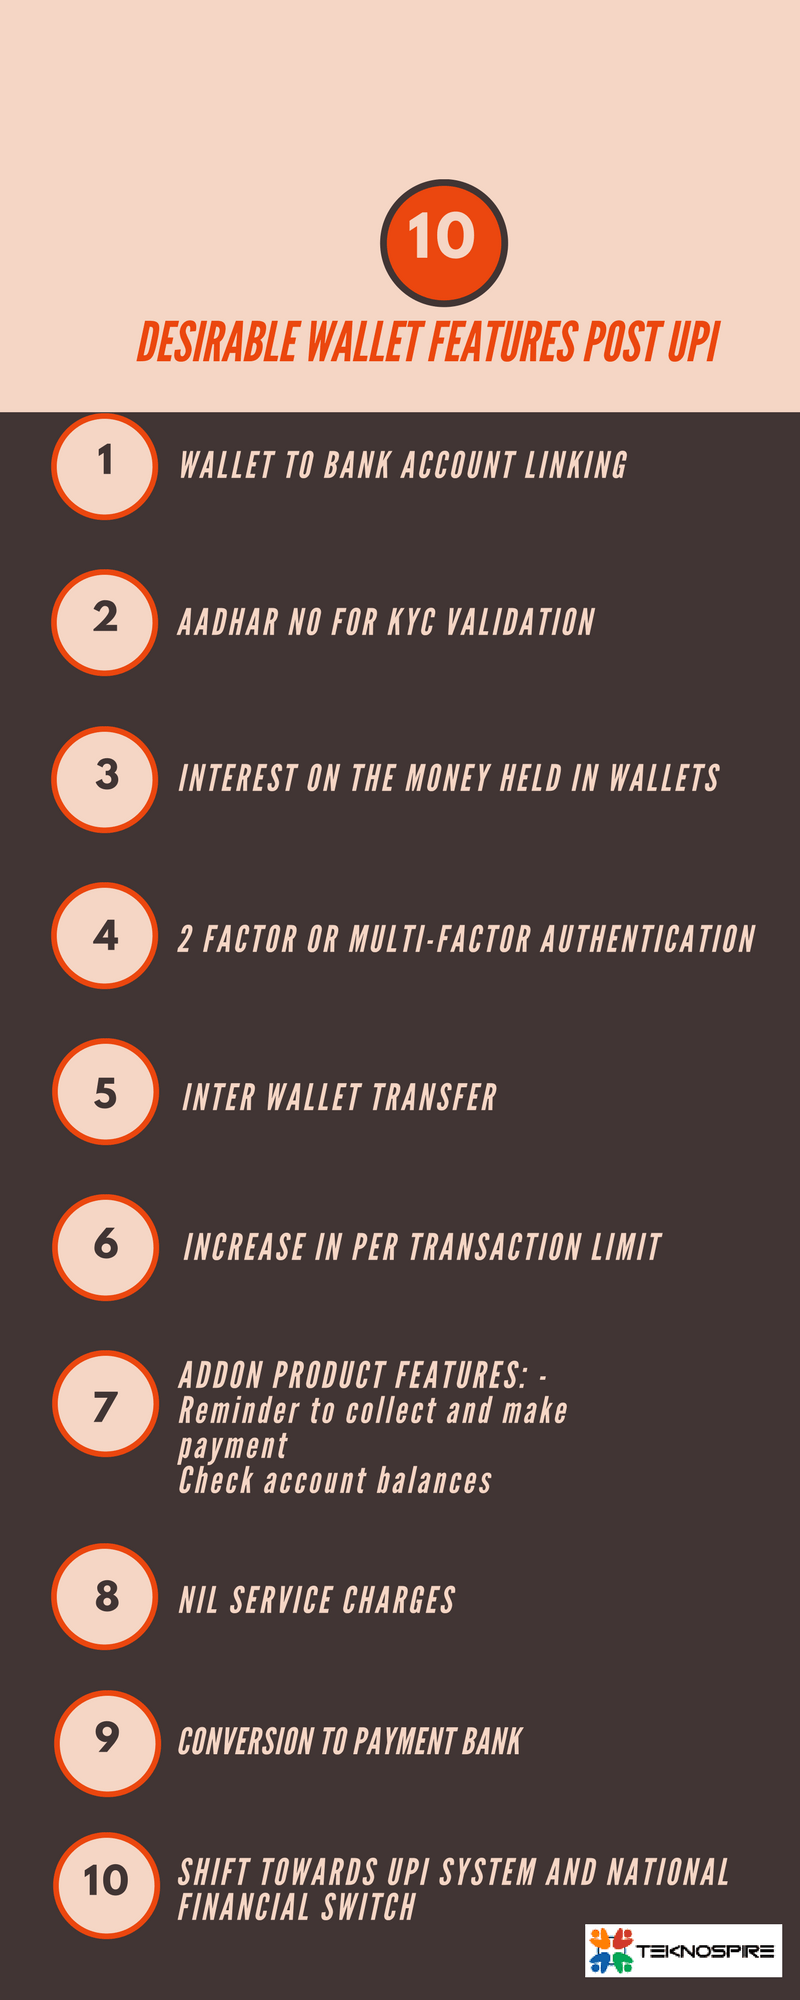 Desirable Wallet Features Post UPI